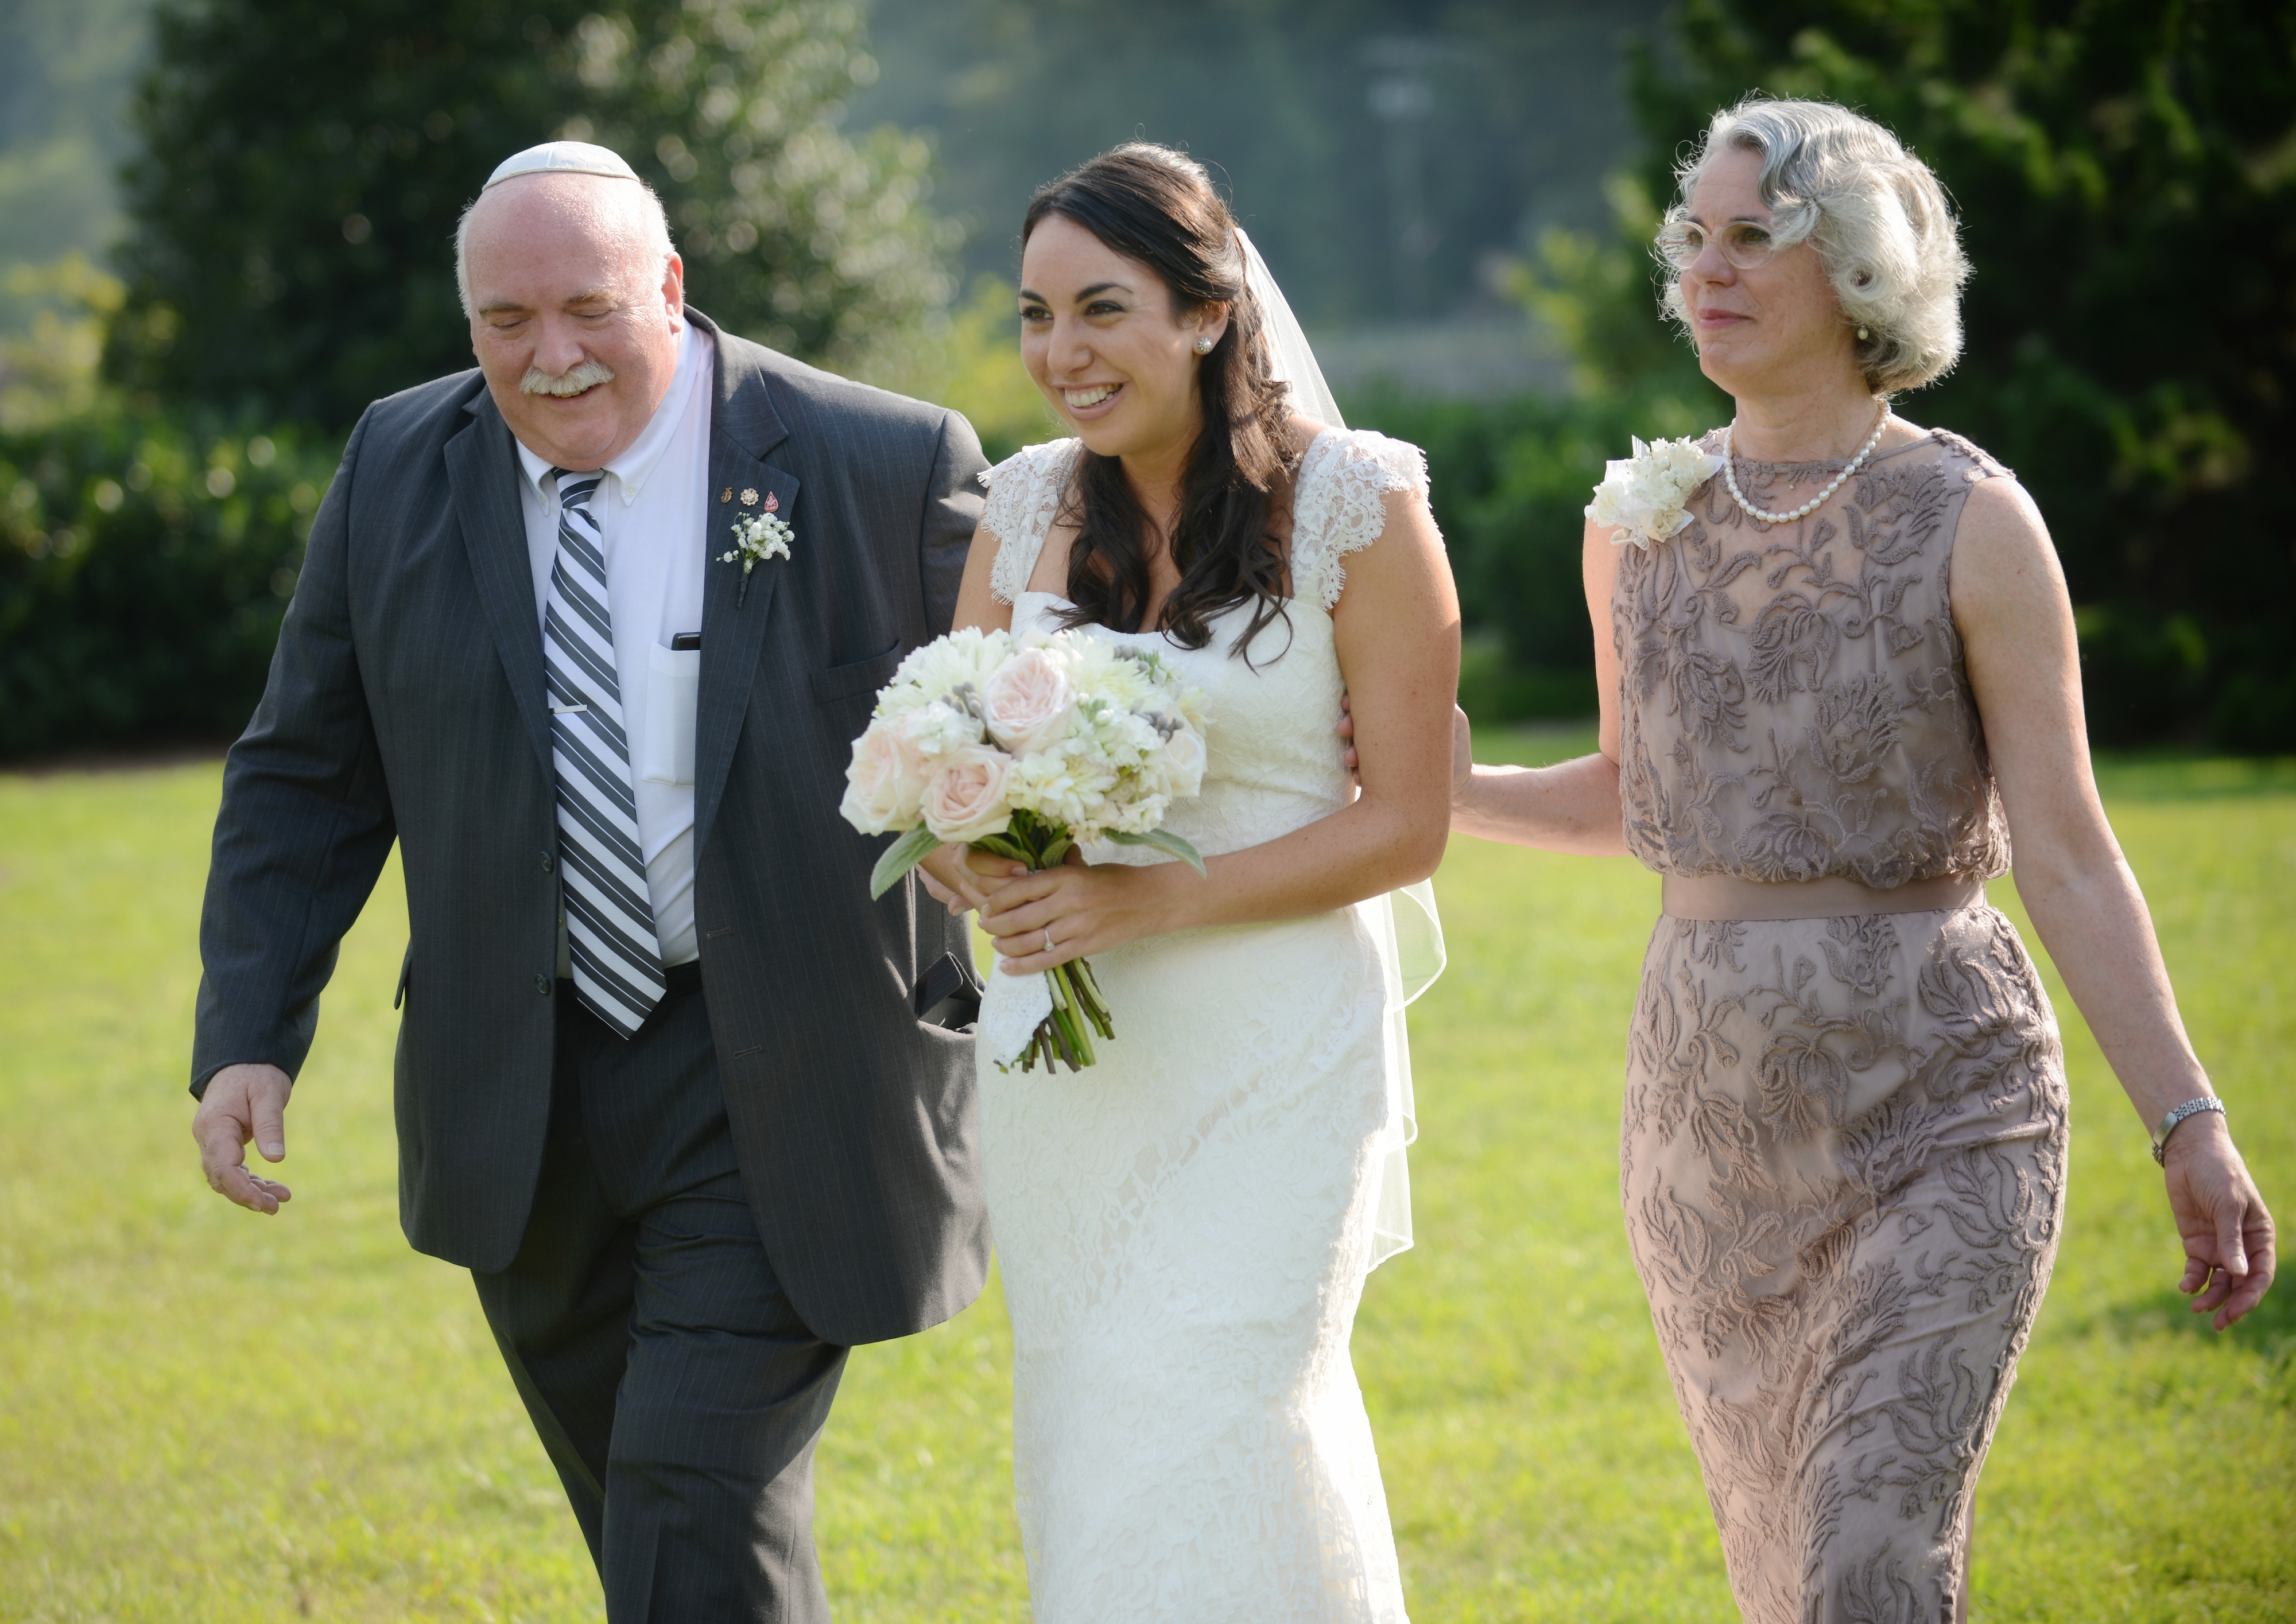 12 Songs Perfect For Your Jewish Wedding Ceremony